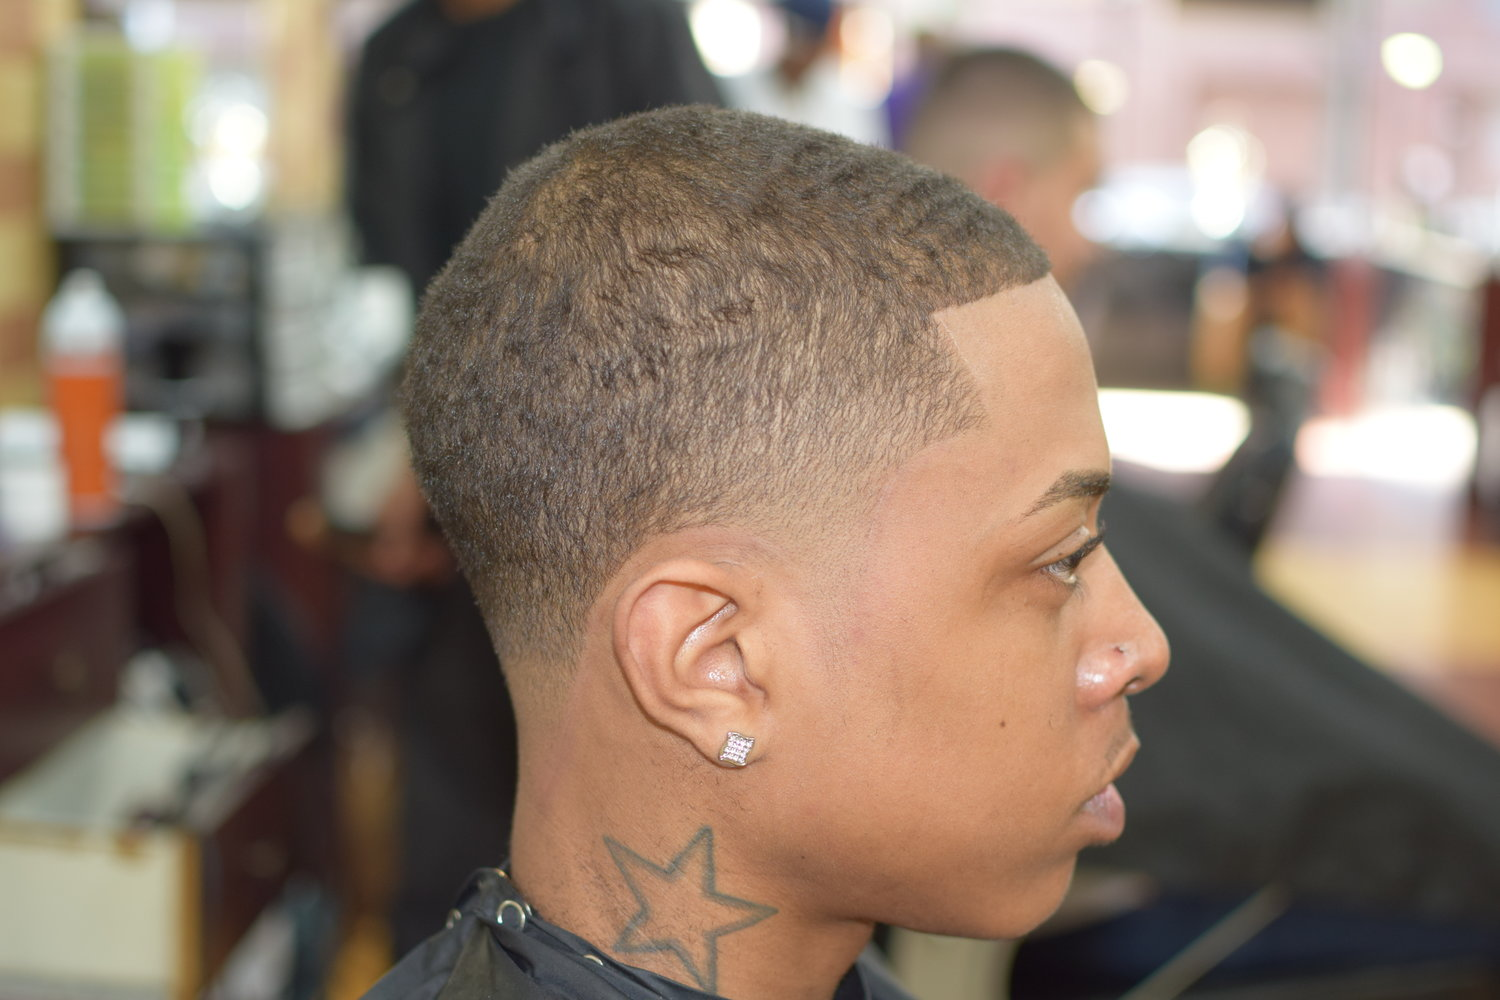 Whats Your Favorite Type Of Haircut Page 2 Sports Hip Hop